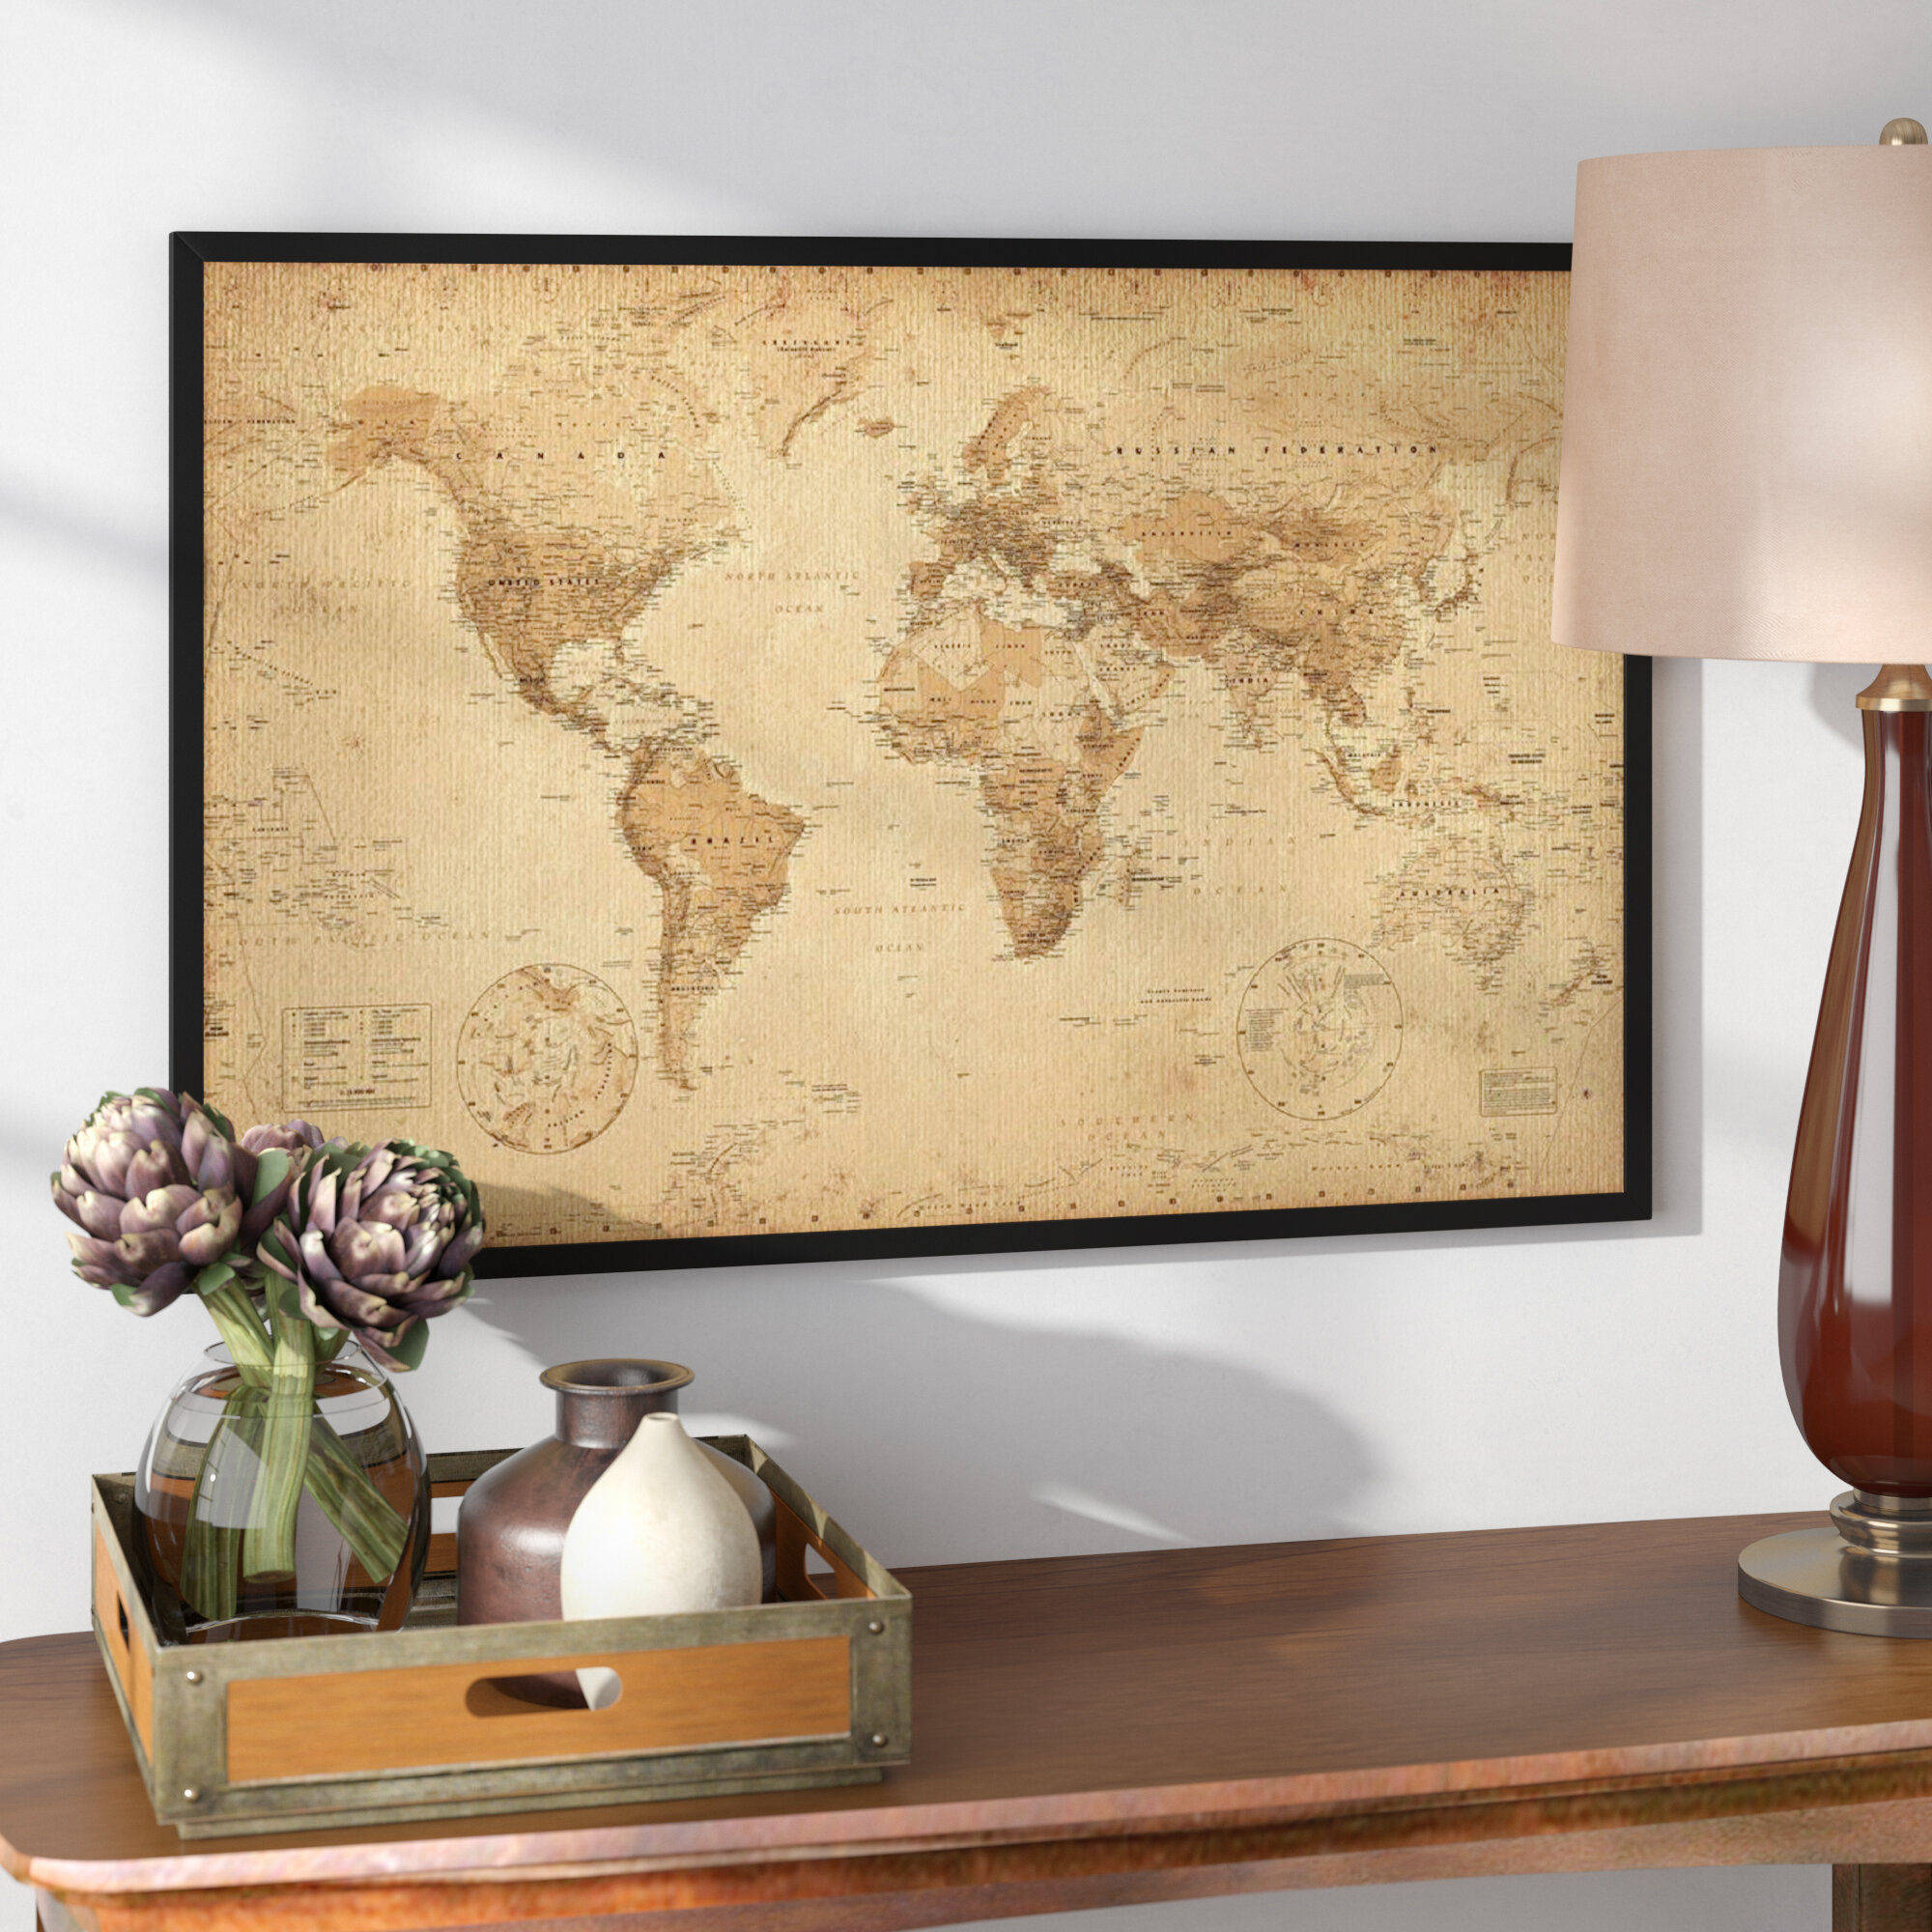 Alcott hill world map antique rectangle framed graphic art print alcott hill world map antique rectangle framed graphic art print poster wayfair gumiabroncs Image collections